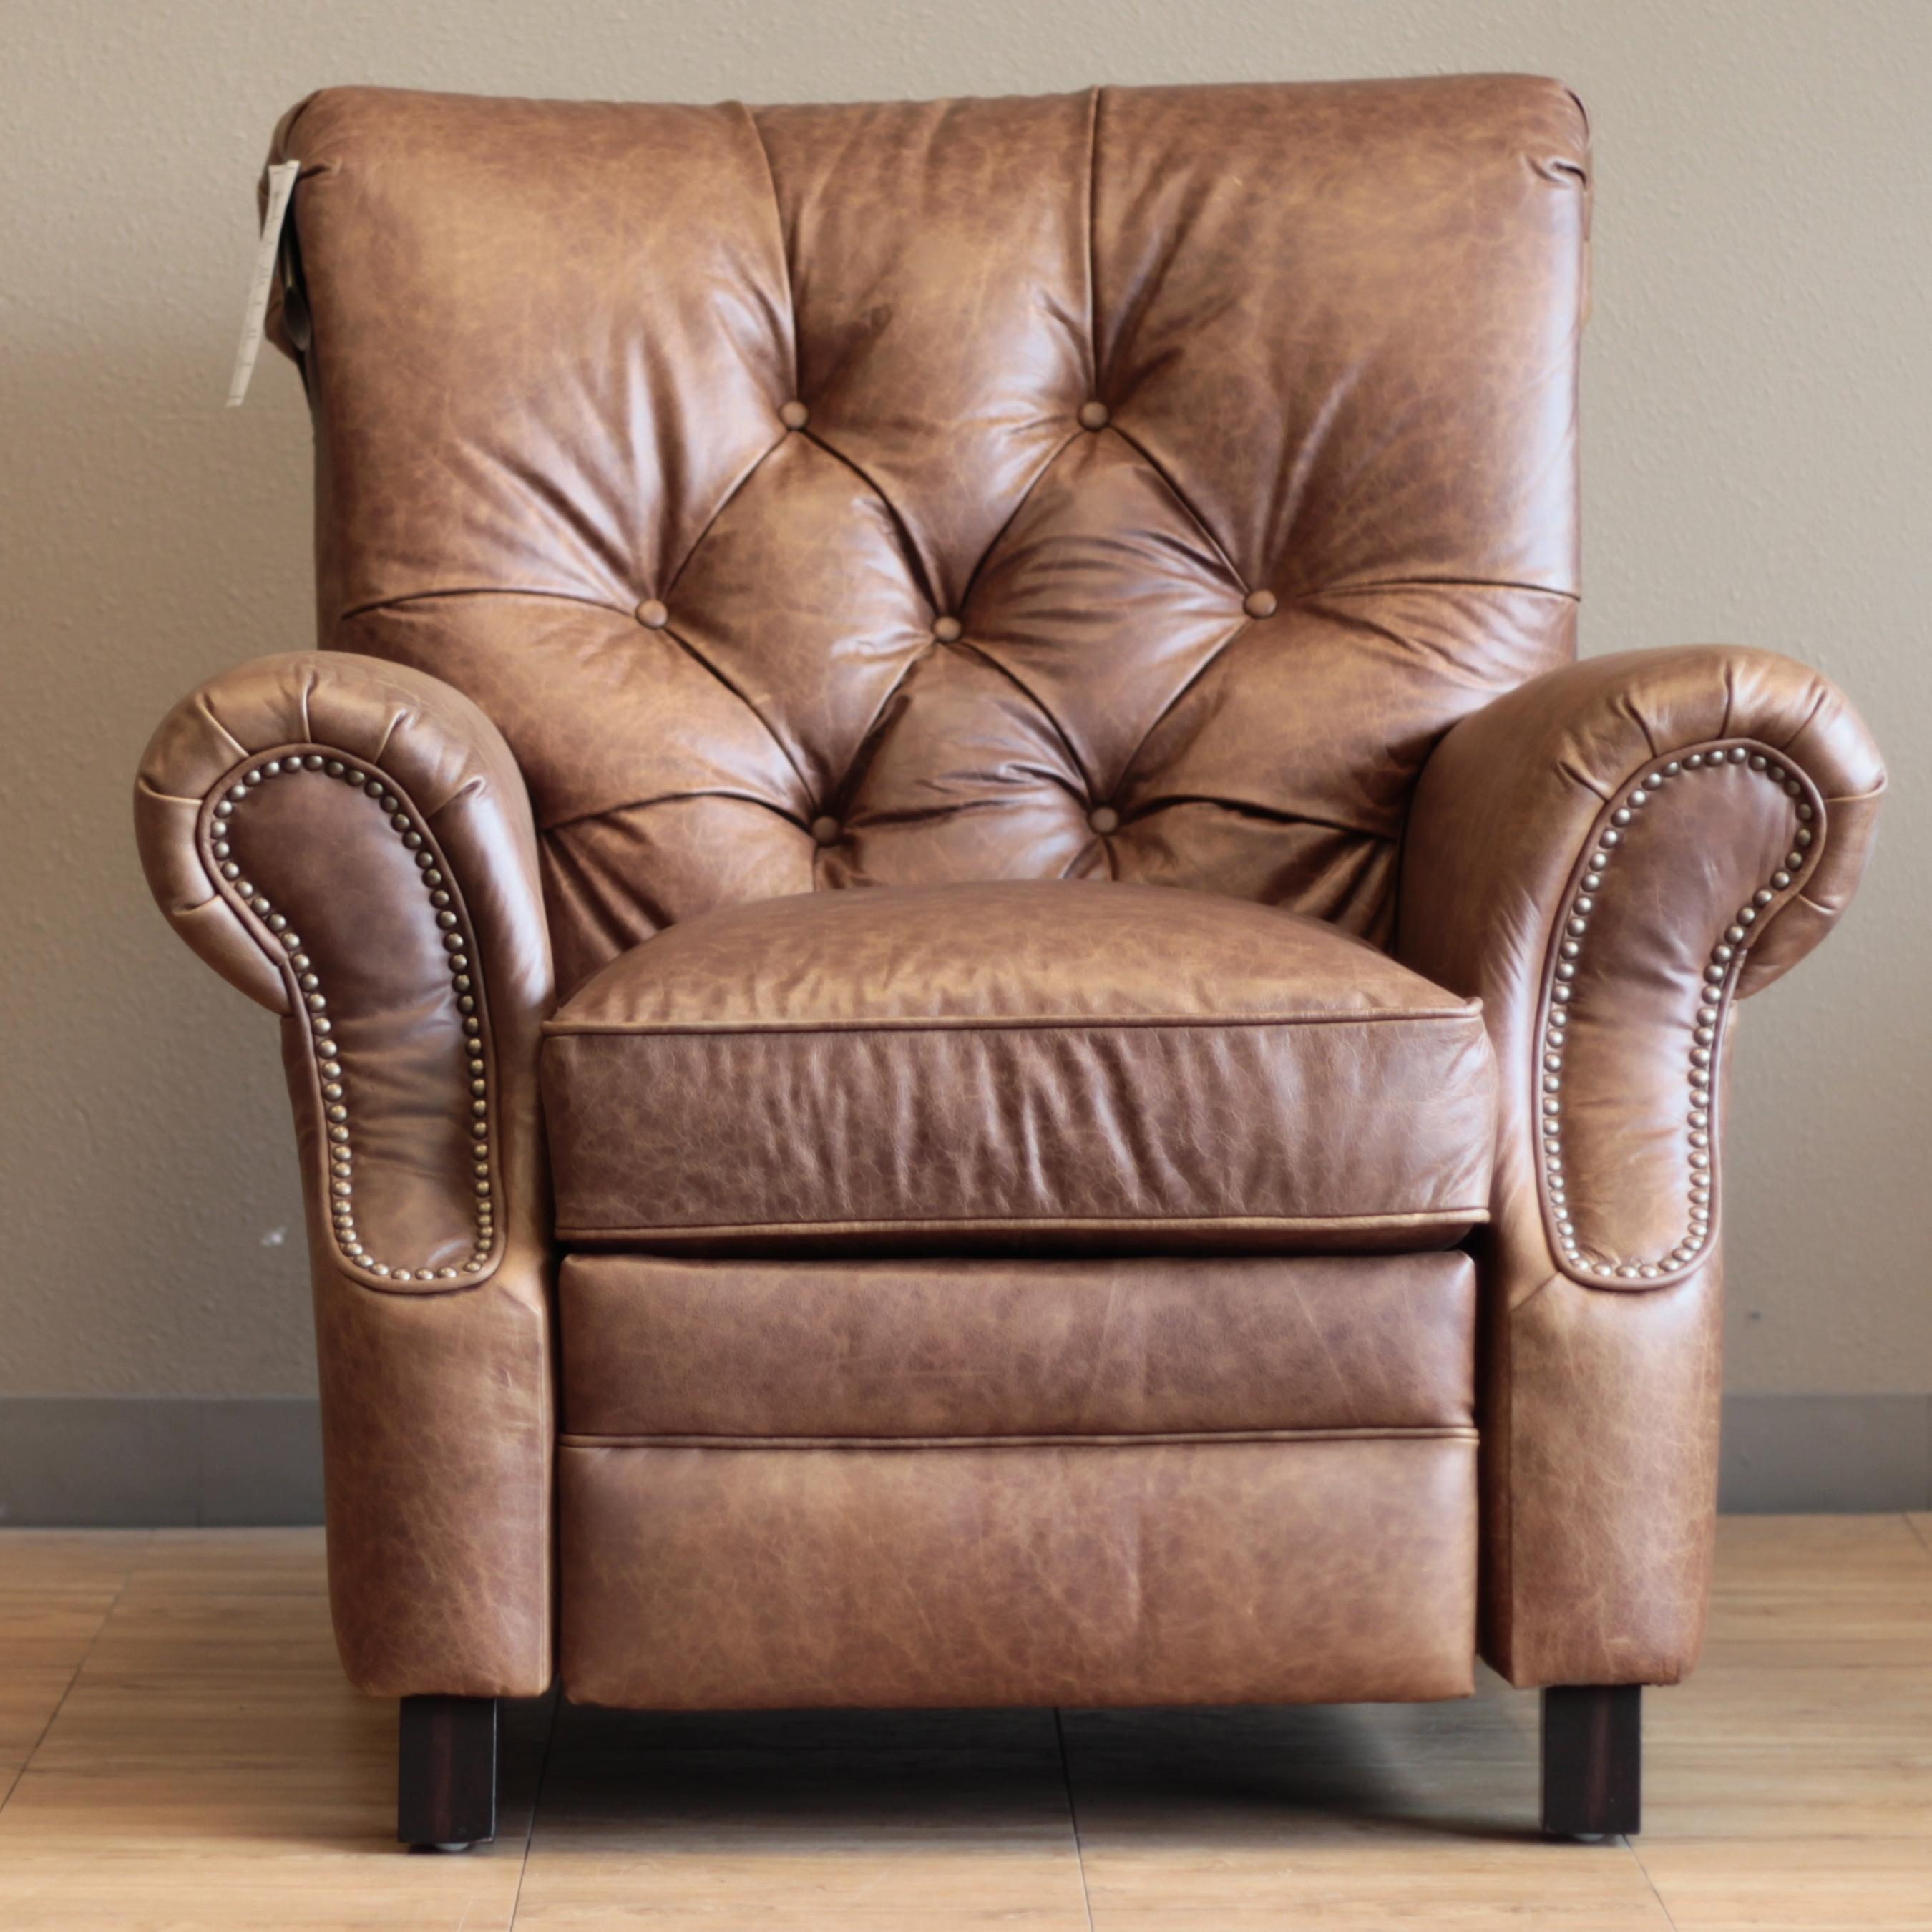 Barcalounger Phoenix Ii Recliner Chair – Leather Recliner Chair Regarding Barcalounger Sofas (Image 11 of 20)